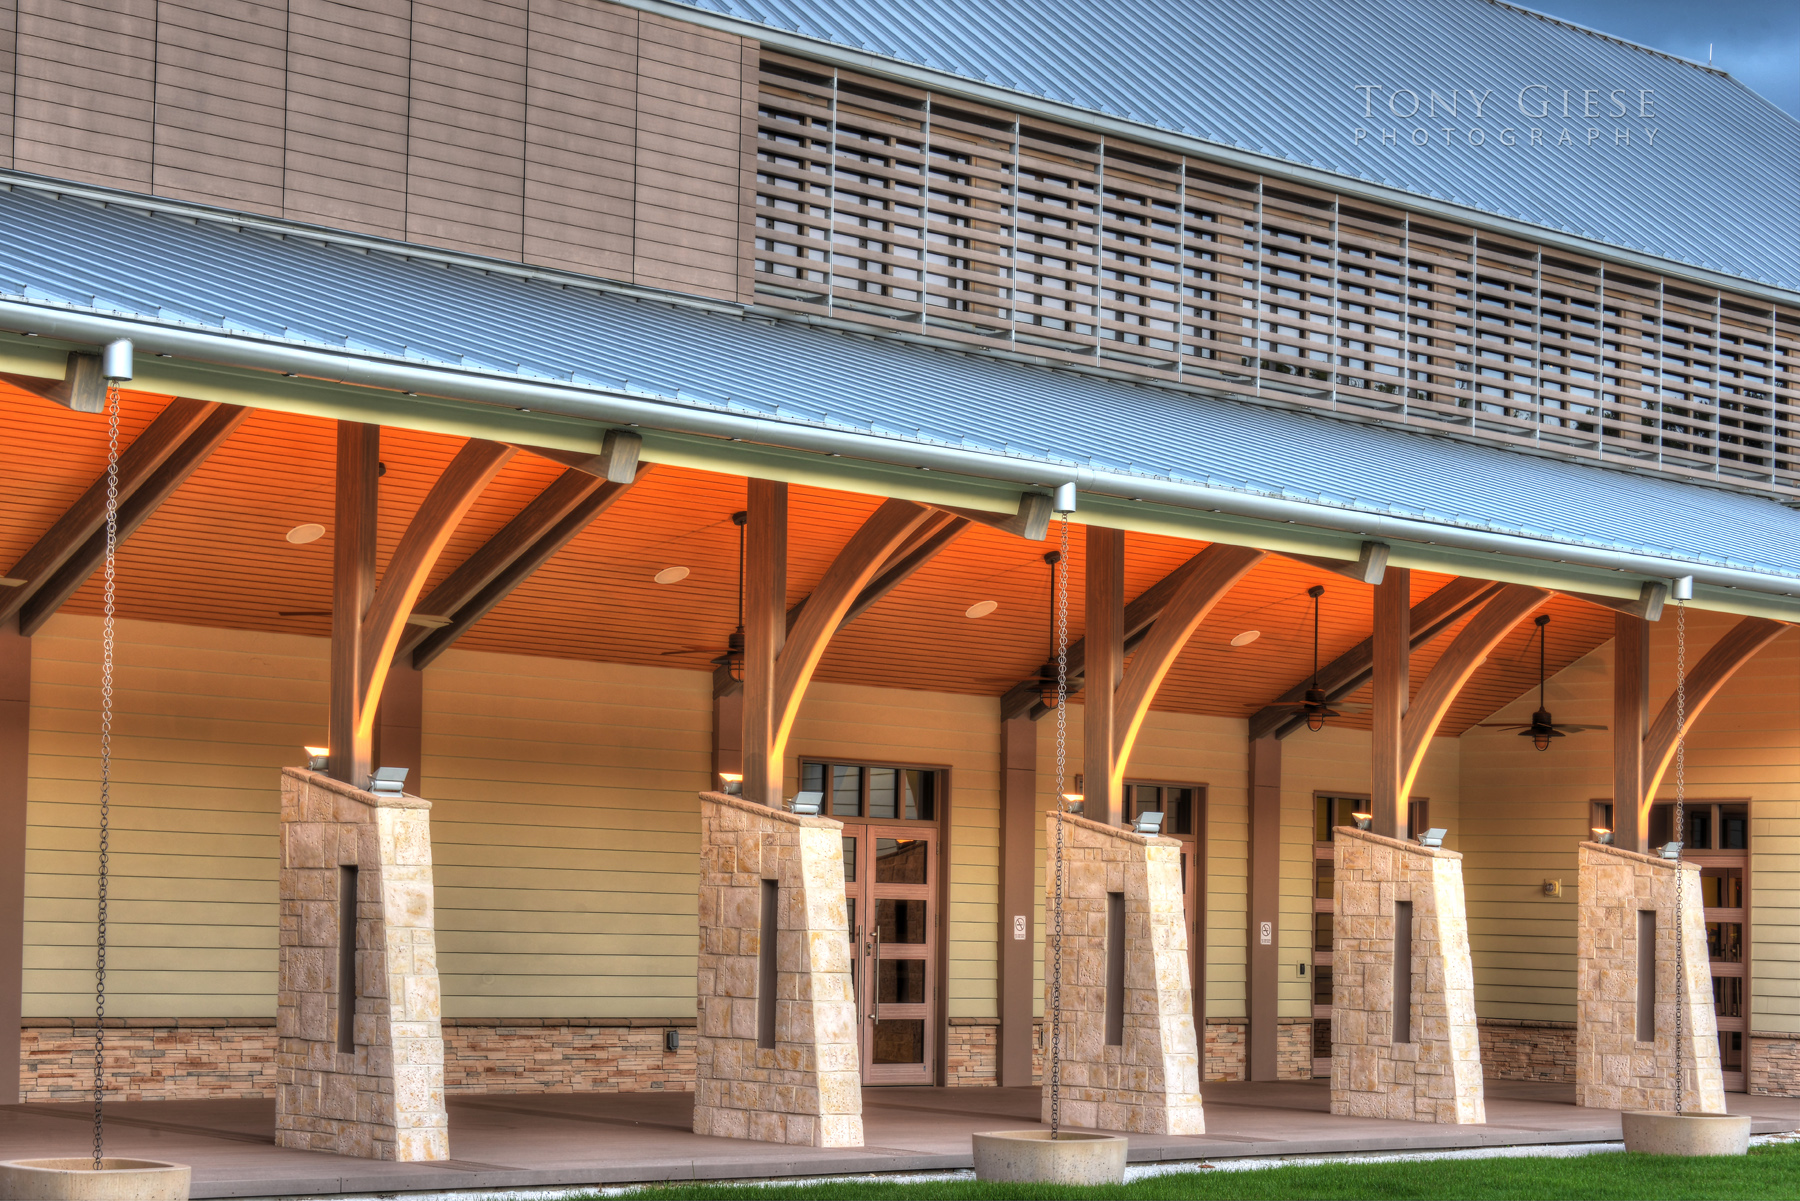 Early morning exterior of Cici and Hyatt Brown Museum architecture photography by Tony Giese